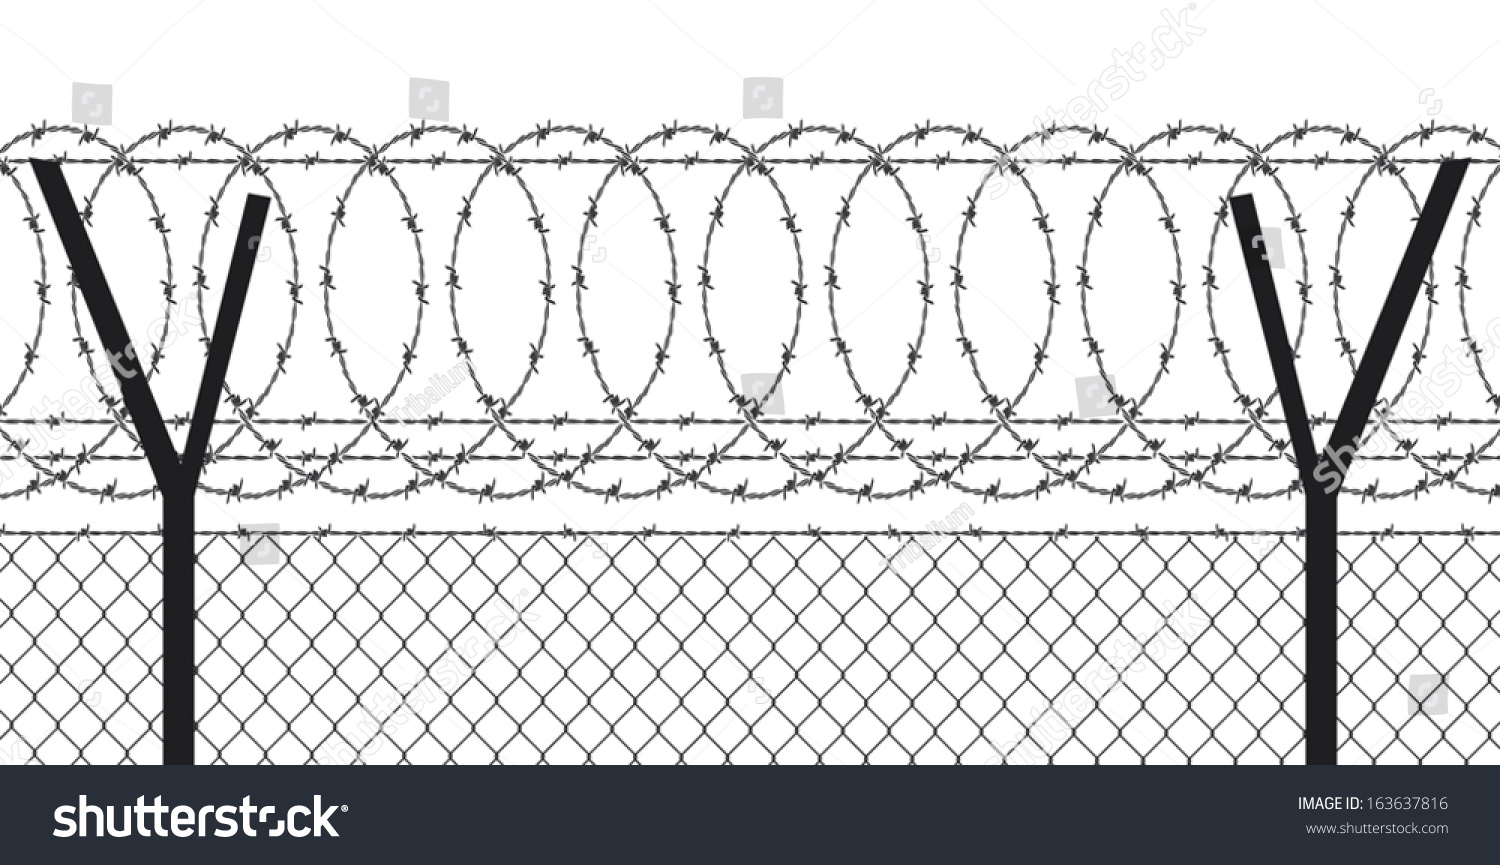 Barbed Wire Fence Stock Vector 163637816 - Shutterstock